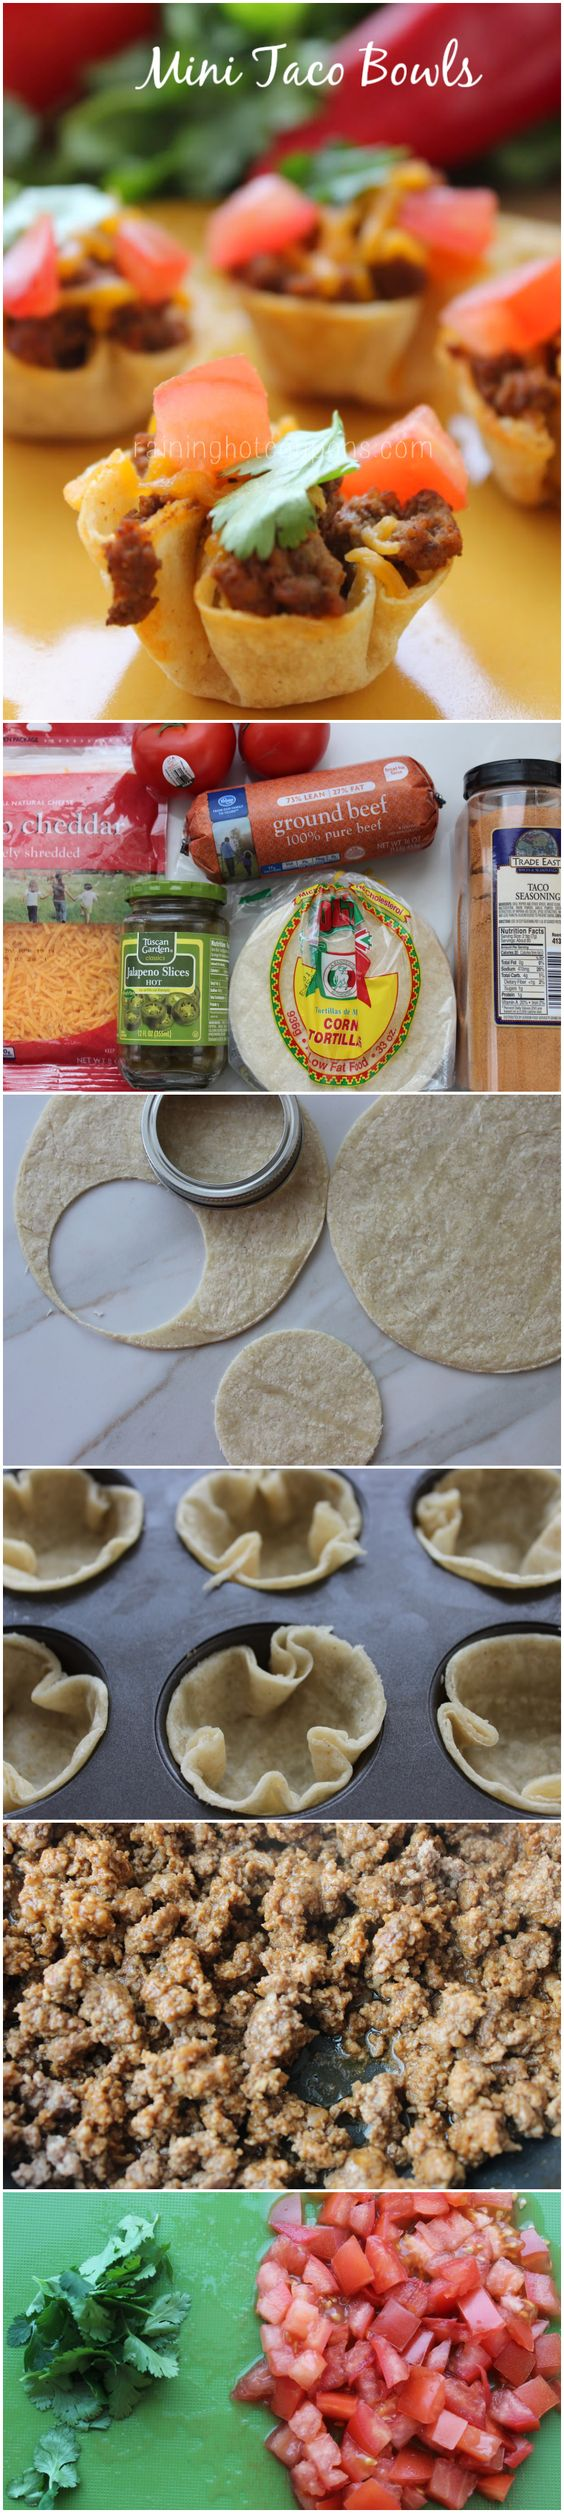 Mini Taco Bowls | I think it would be easier, and less wasteful, to substitute the soft taco shells with wan ton wraps.